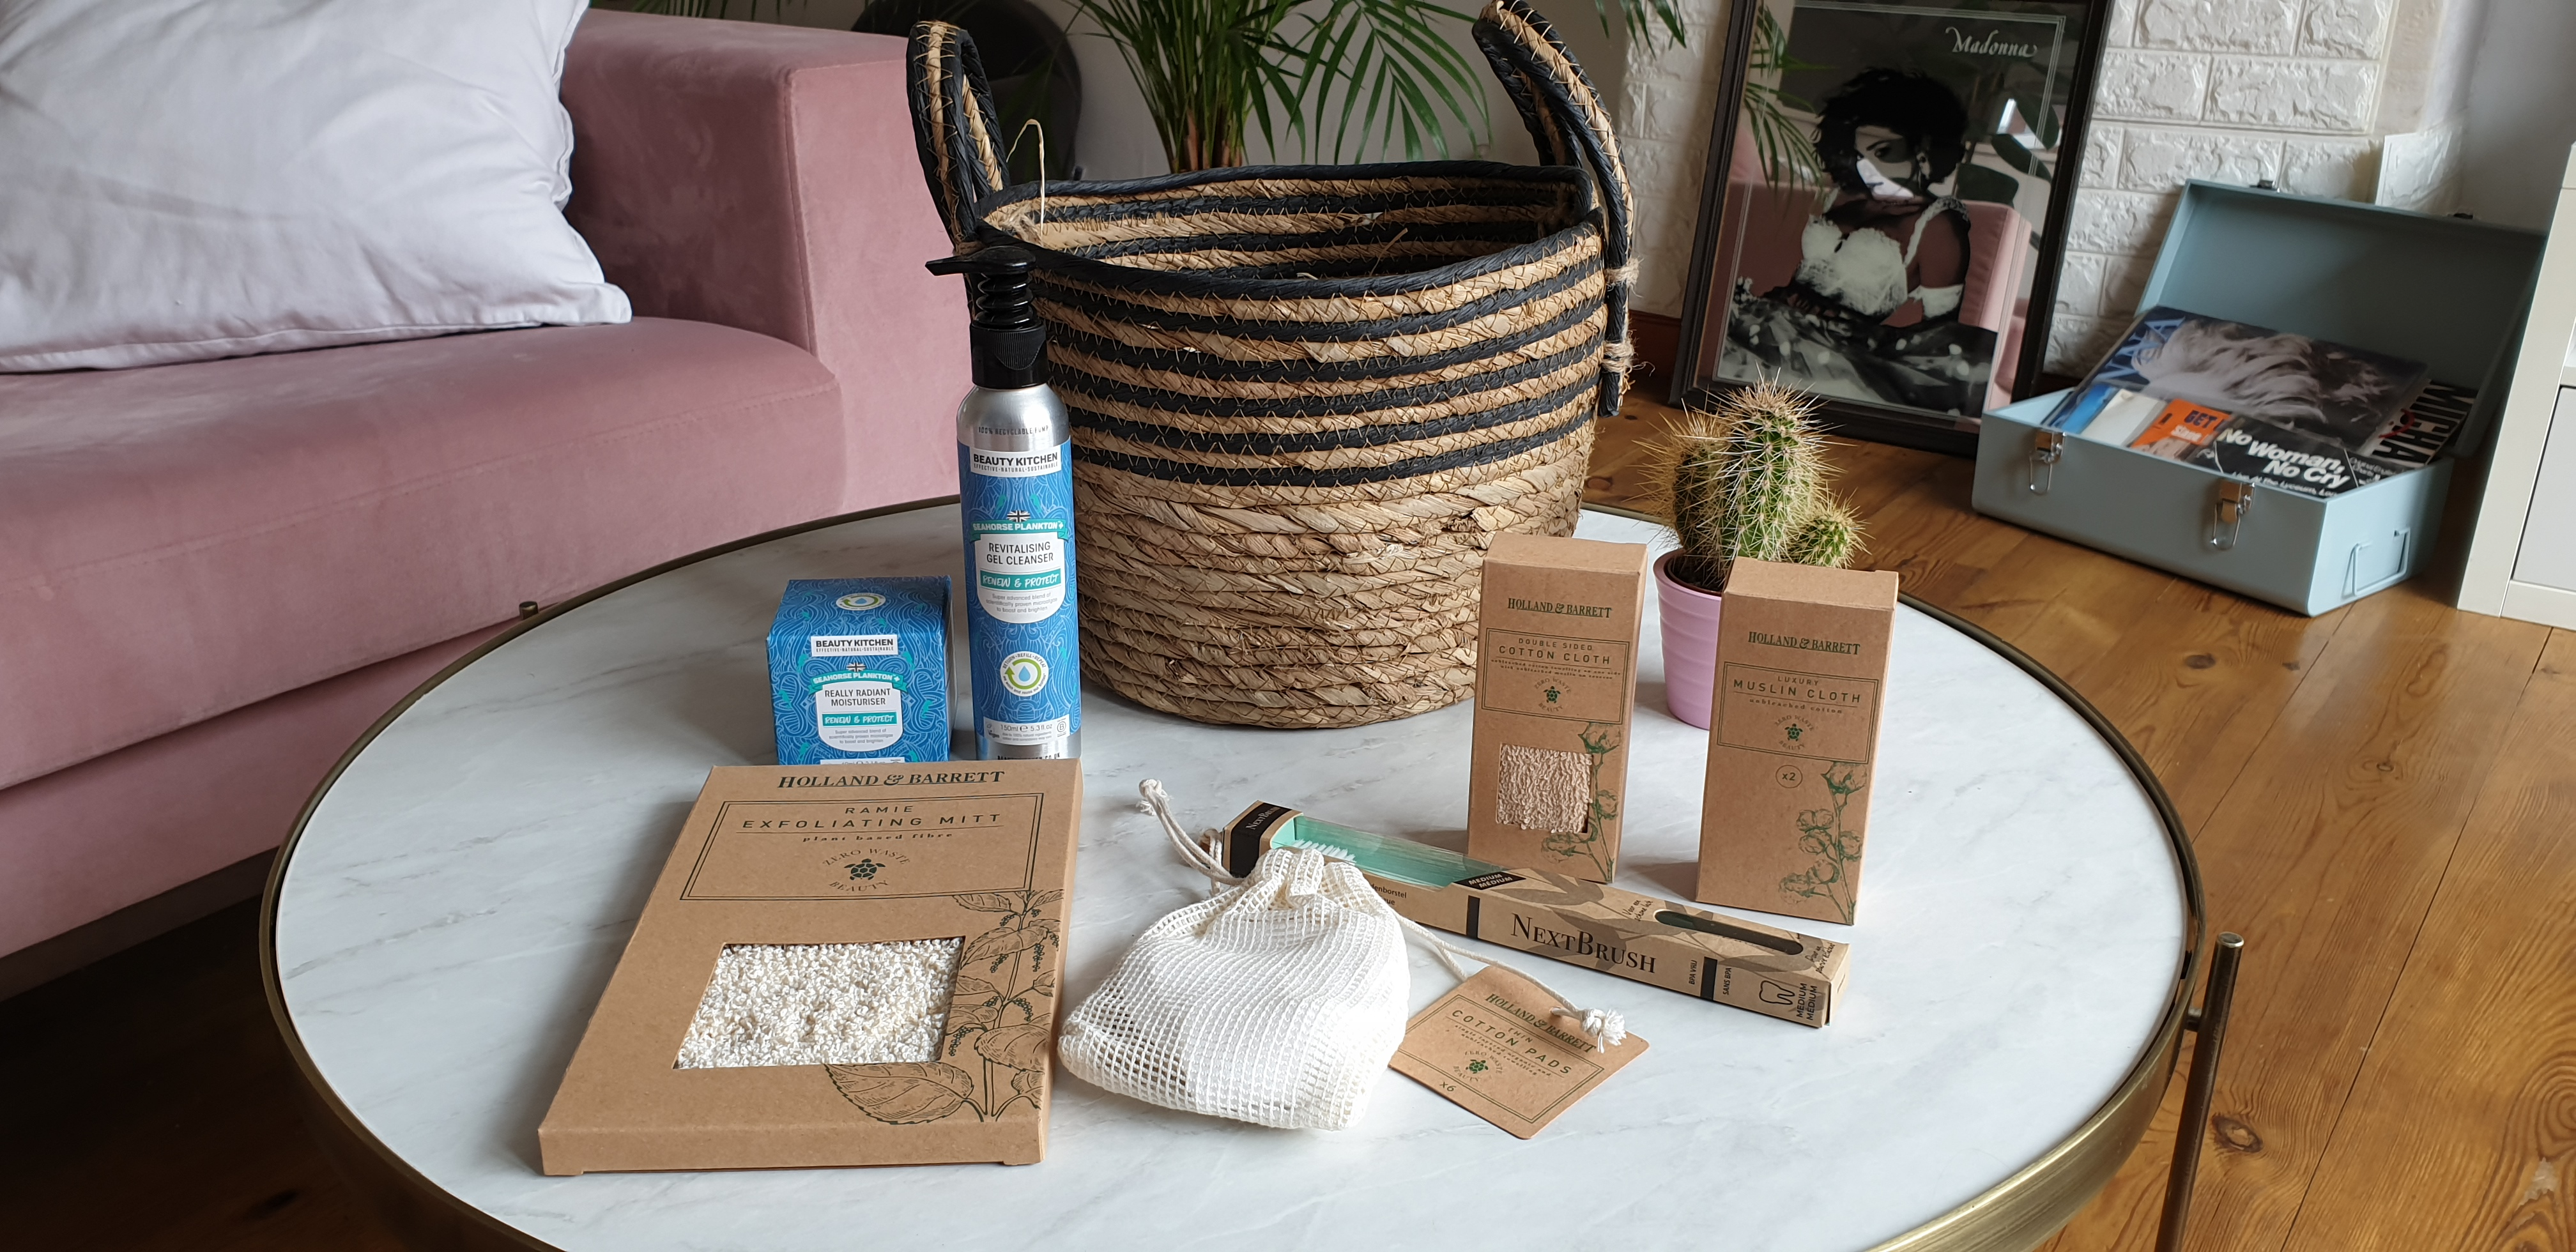 ZERO WASTE BADKAMER MUST-HAVES